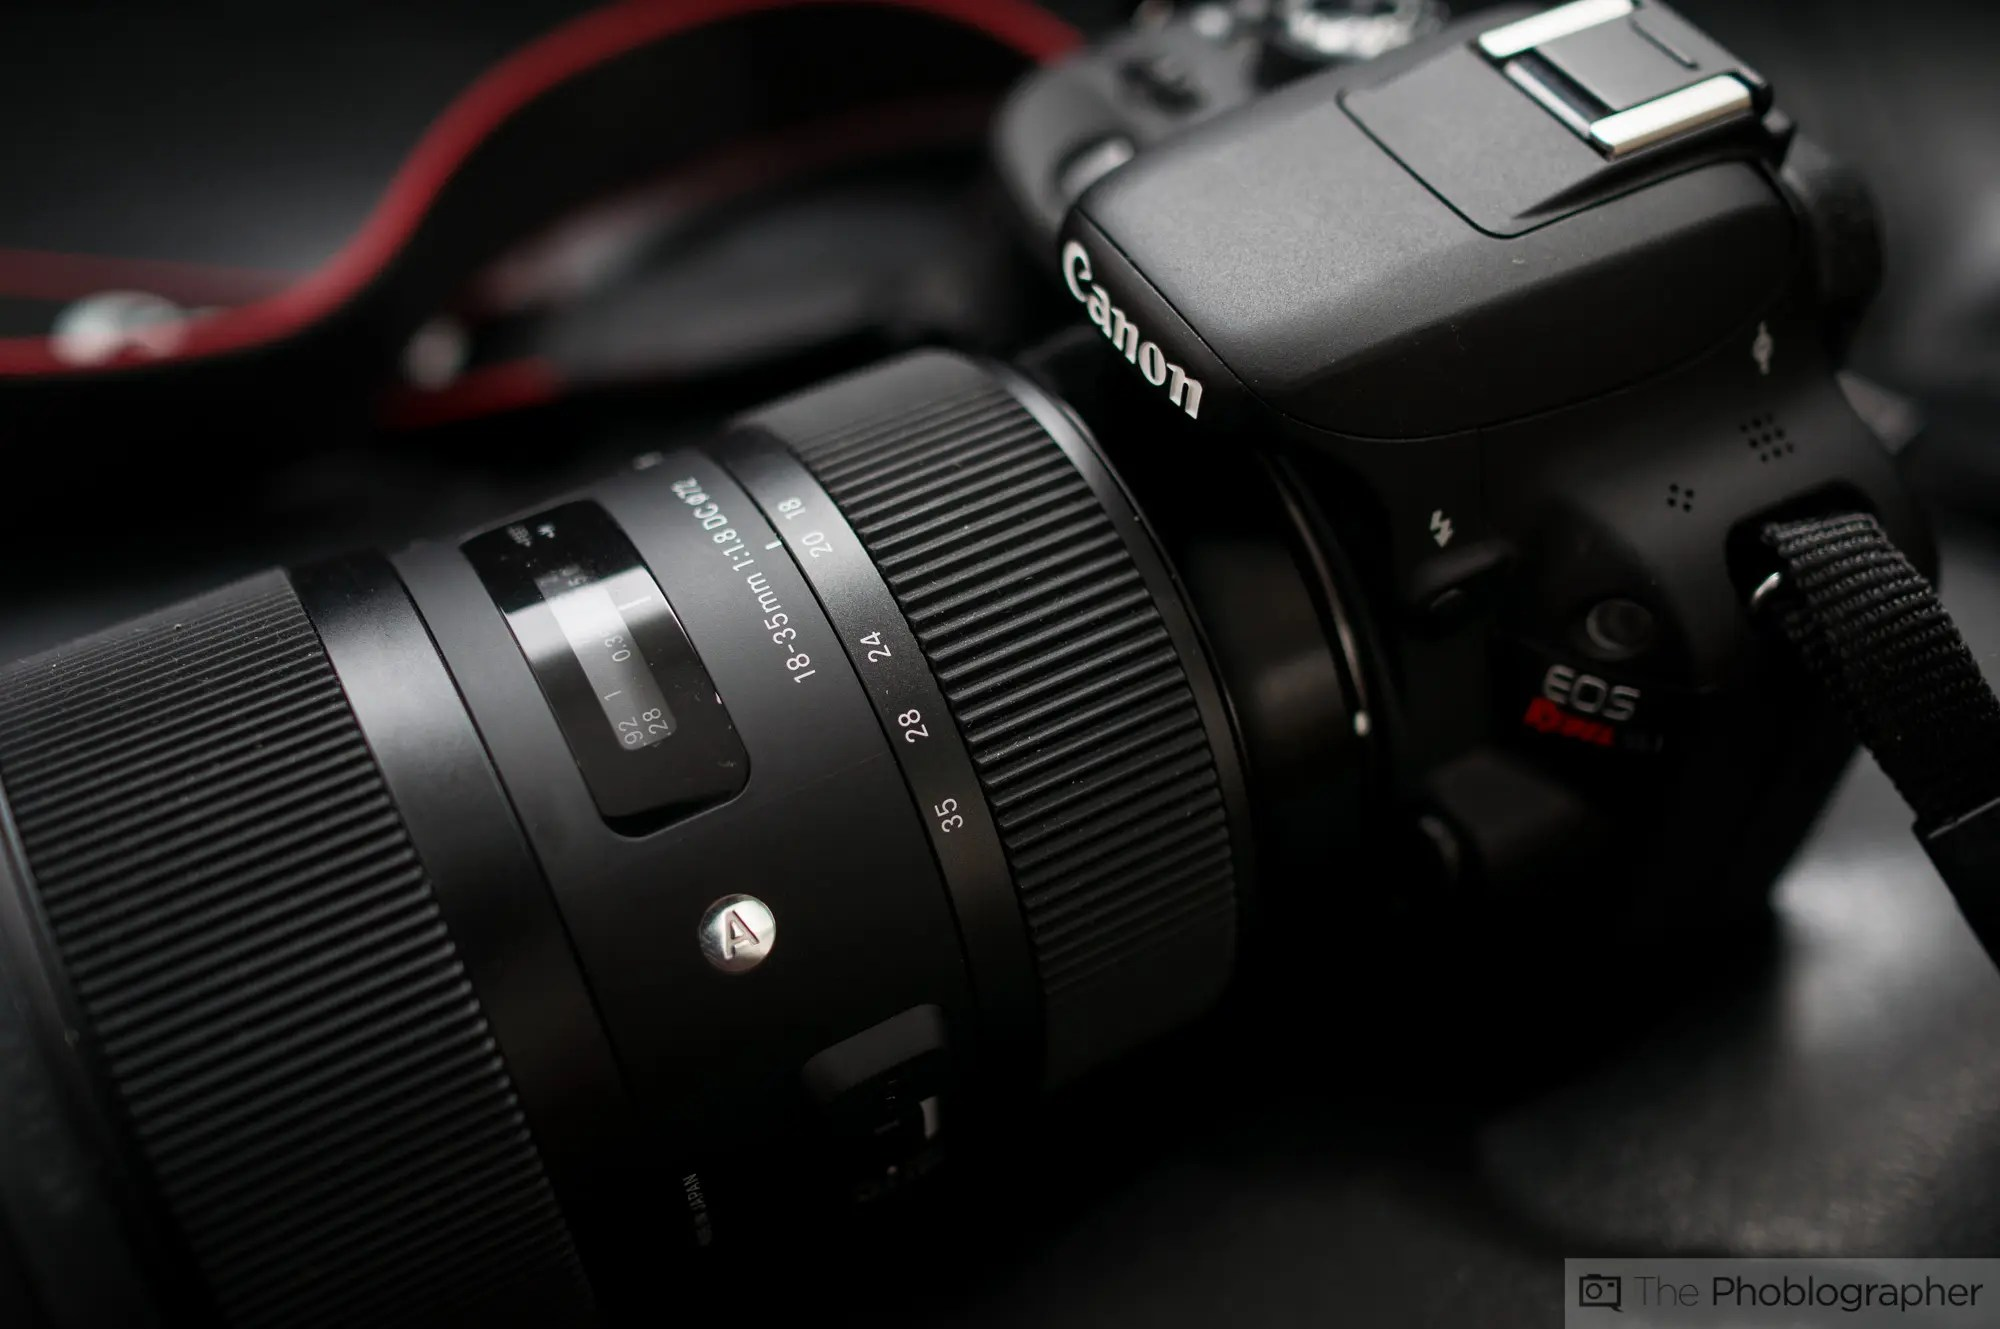 Hairy Chris Gampat Phoblographer Sigma Product Photos Sigma Announces New Mount Conversion Service Phoblographer Refurbished Canon Lens Canada Canon Refurbished Lenses 135mm dpreview Refurbished Canon Lenses